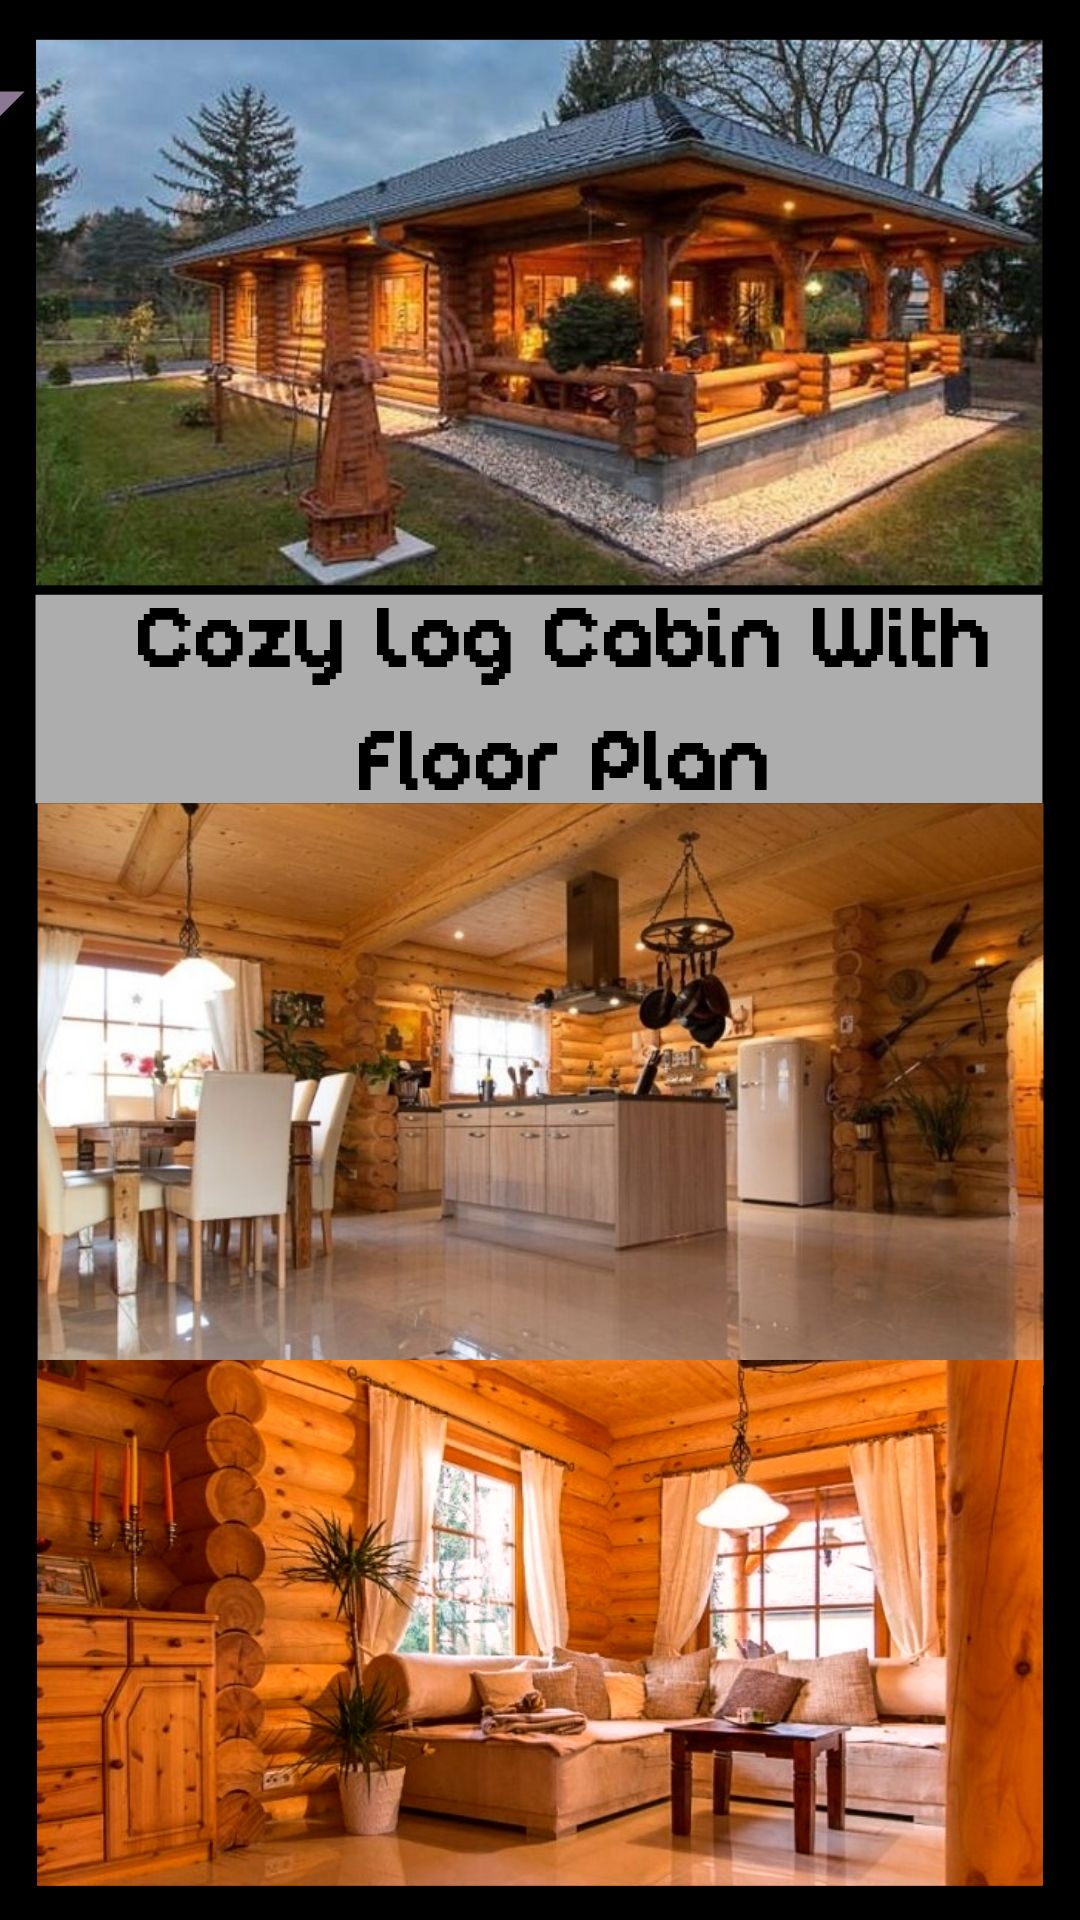 Cozy Log Cabin With Floor Plan Log Cabin Plans Log Cabin Floor Plans Small Log Cabin Plans